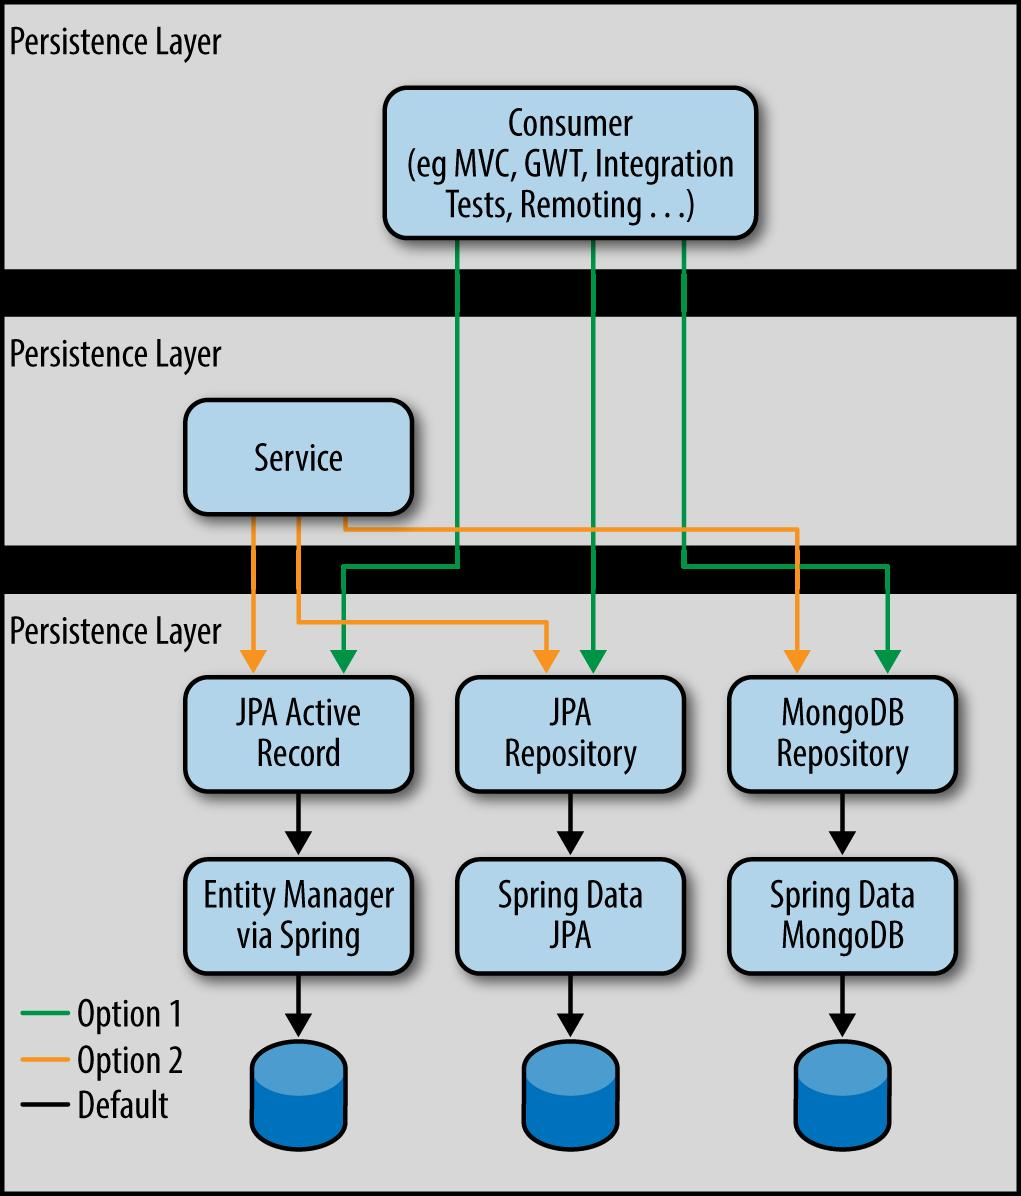 Spring Data Modern Access For Enterprise Java Pdf Plug Connector And Pinout Diagram Blackberry Pearl 8100 Figure 9 1 Roo 12 Layer Architecture Batch File Windows When